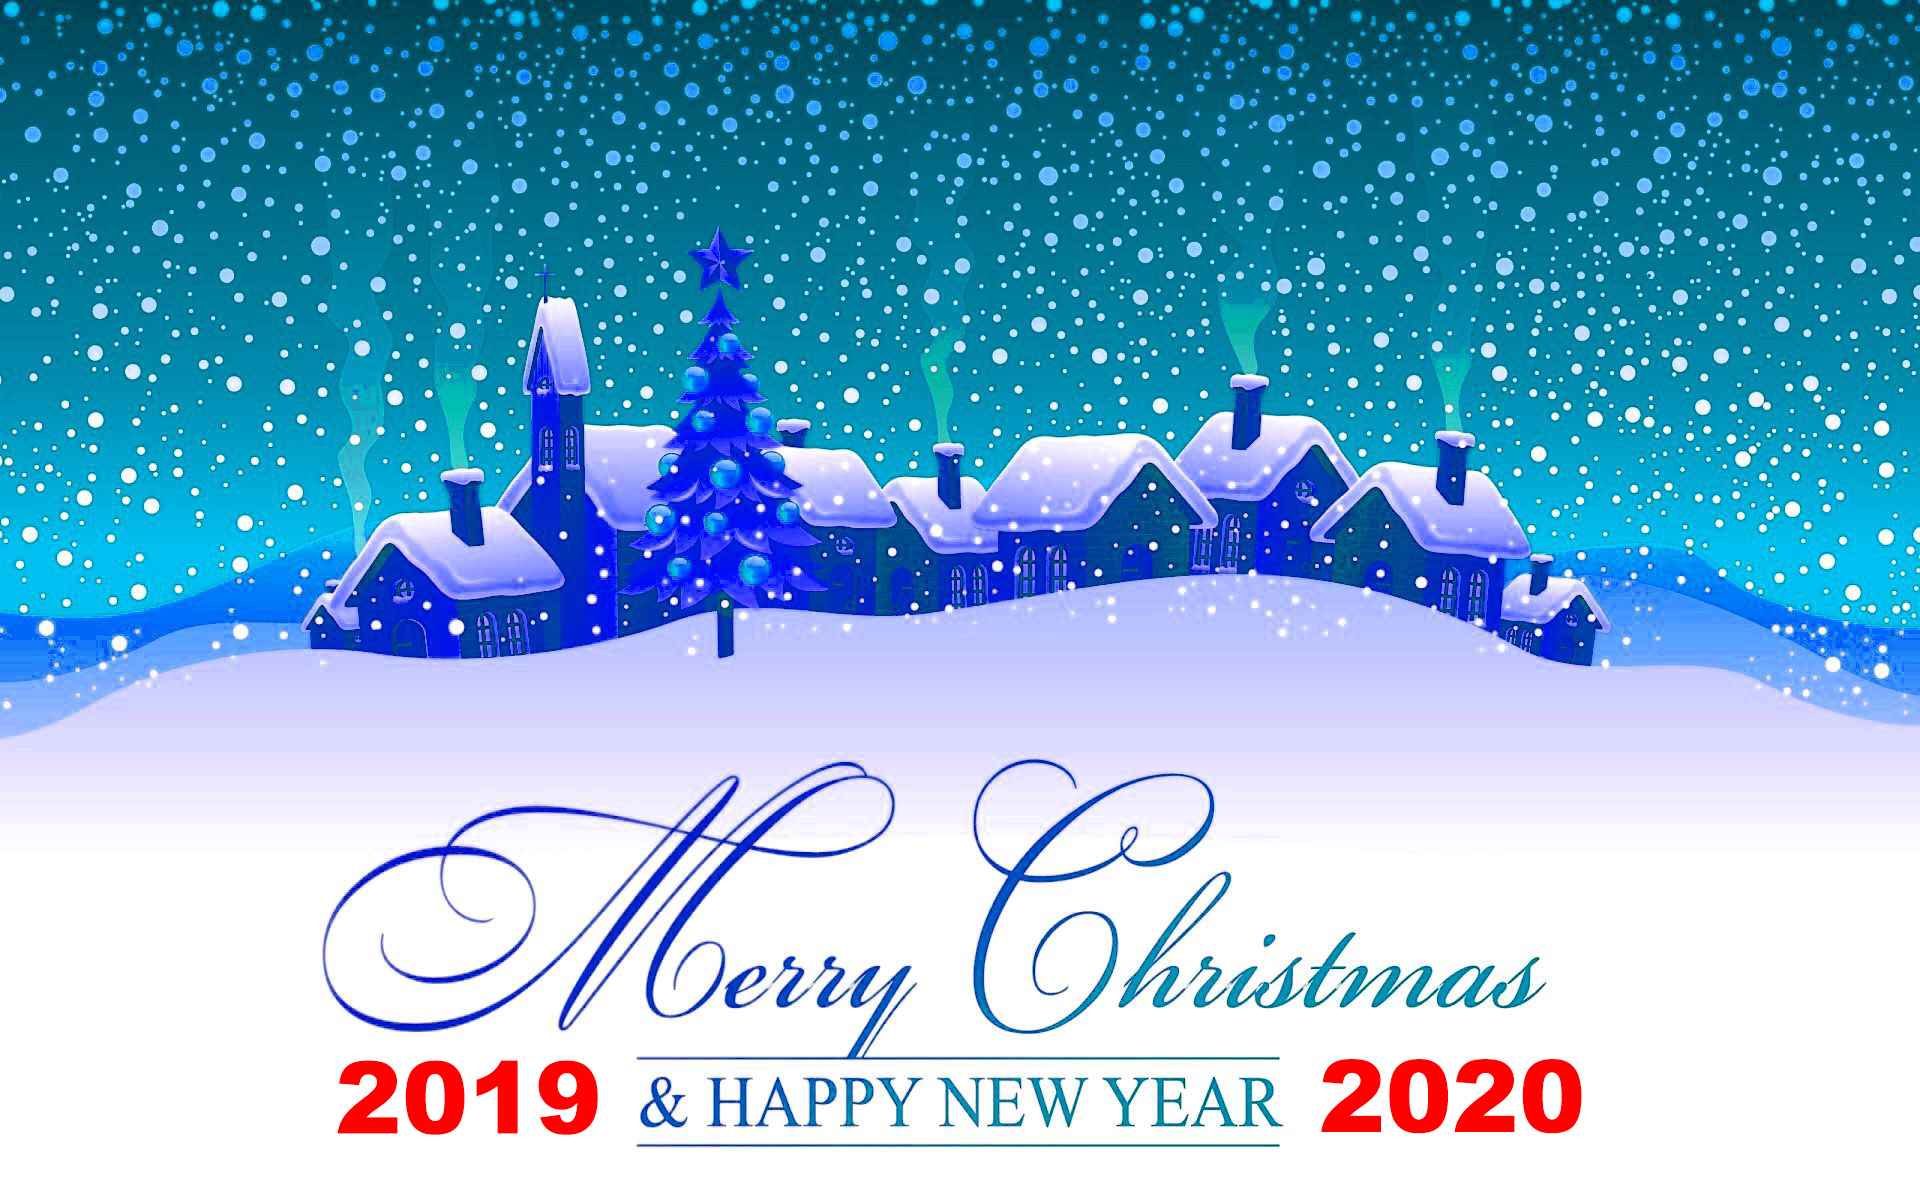 merry christmas 2020 wallpaper